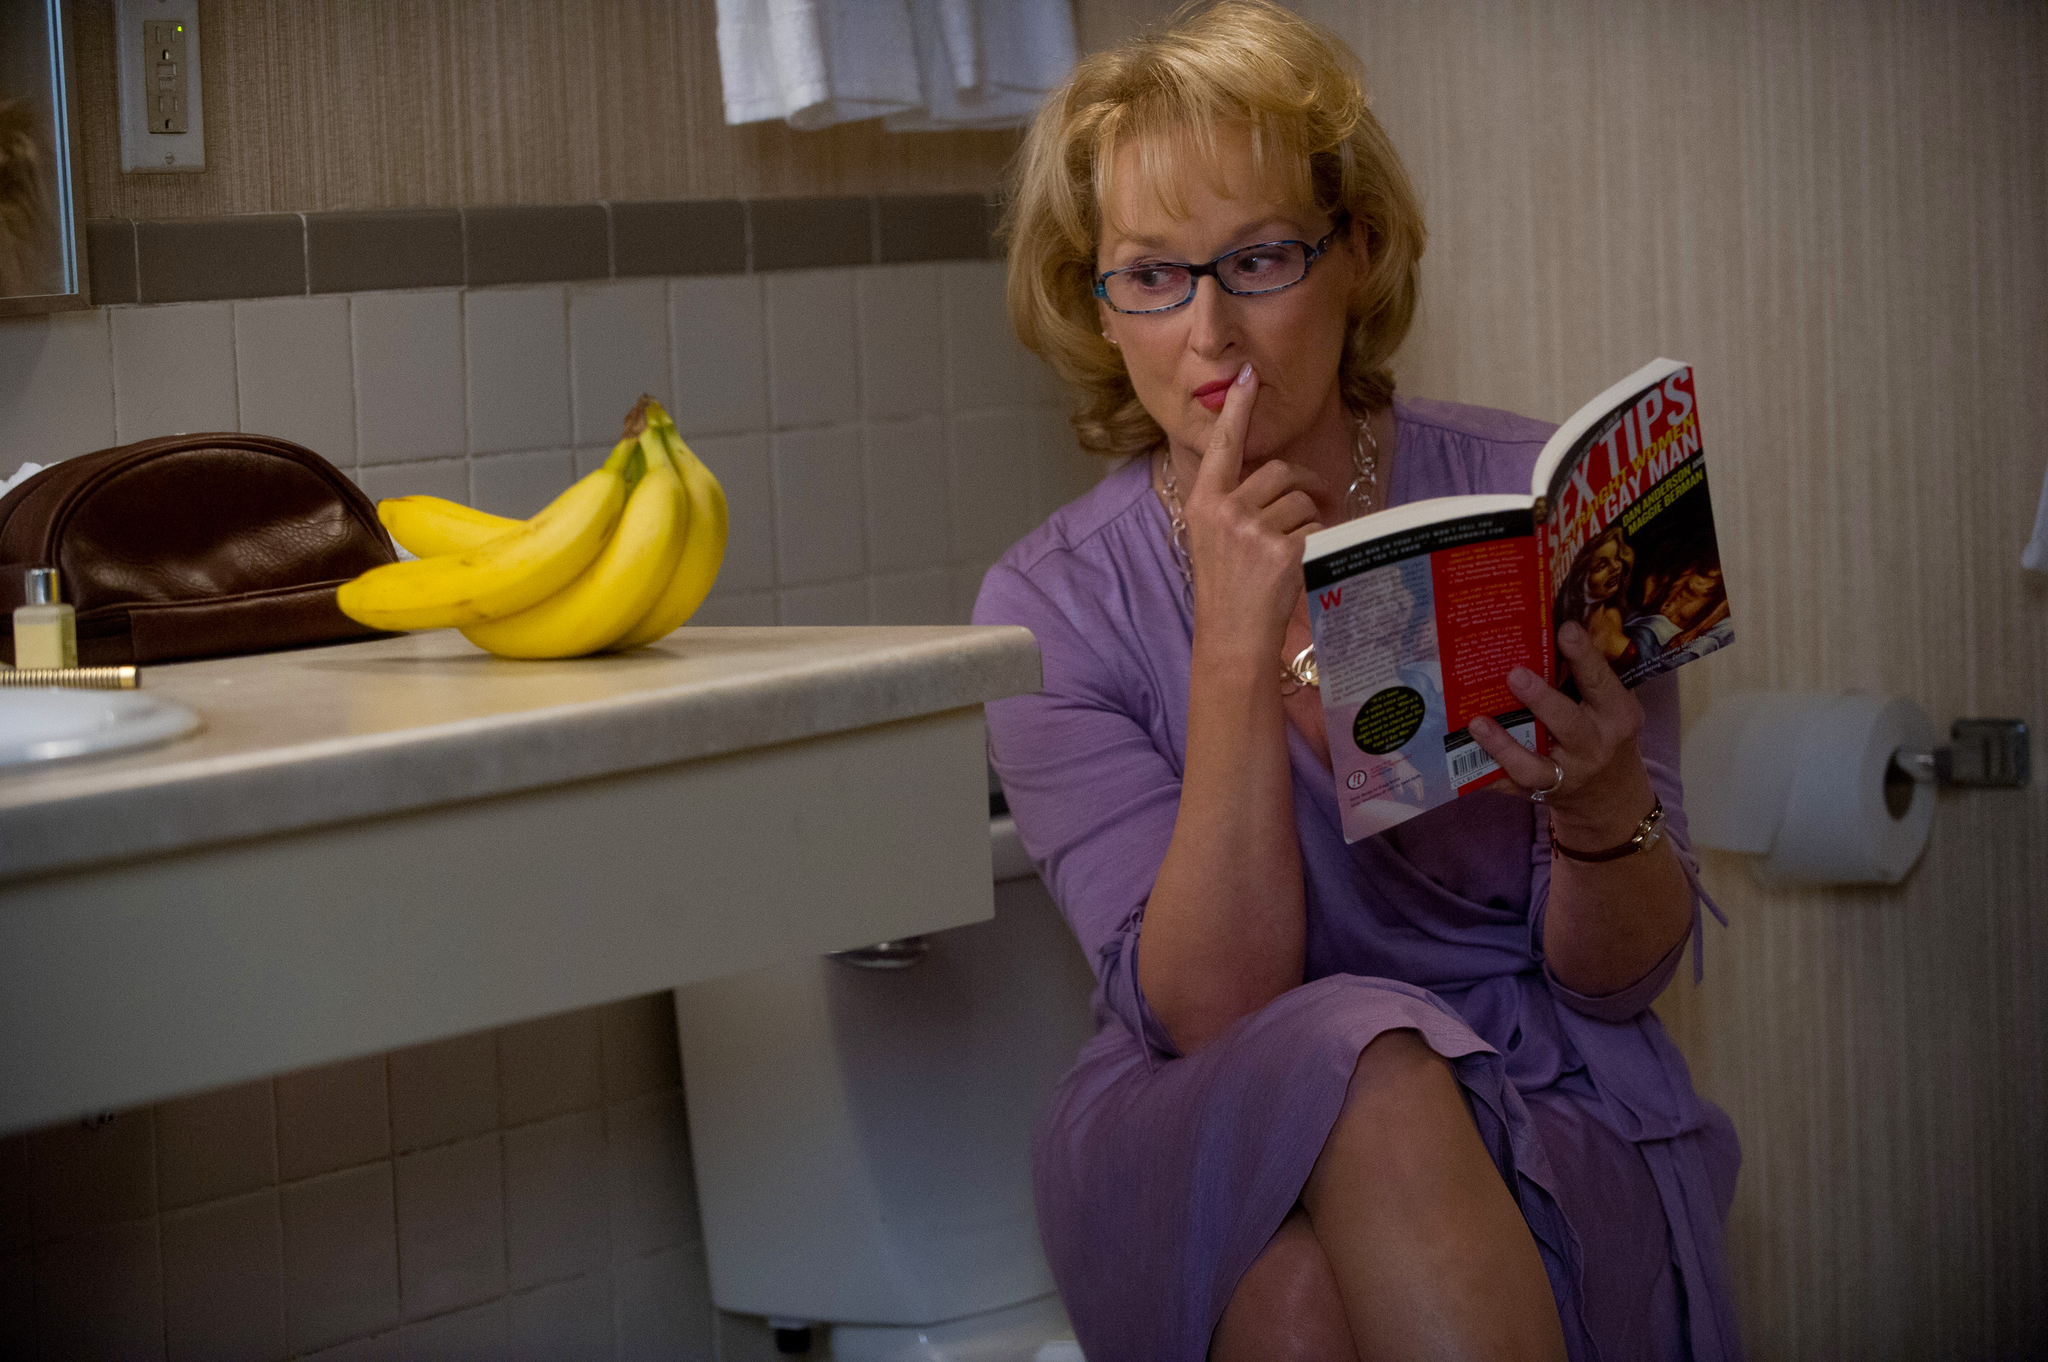 Kay Soames (MERYL STREEP) in HOPE SPRINGS. © Columbia Pictures